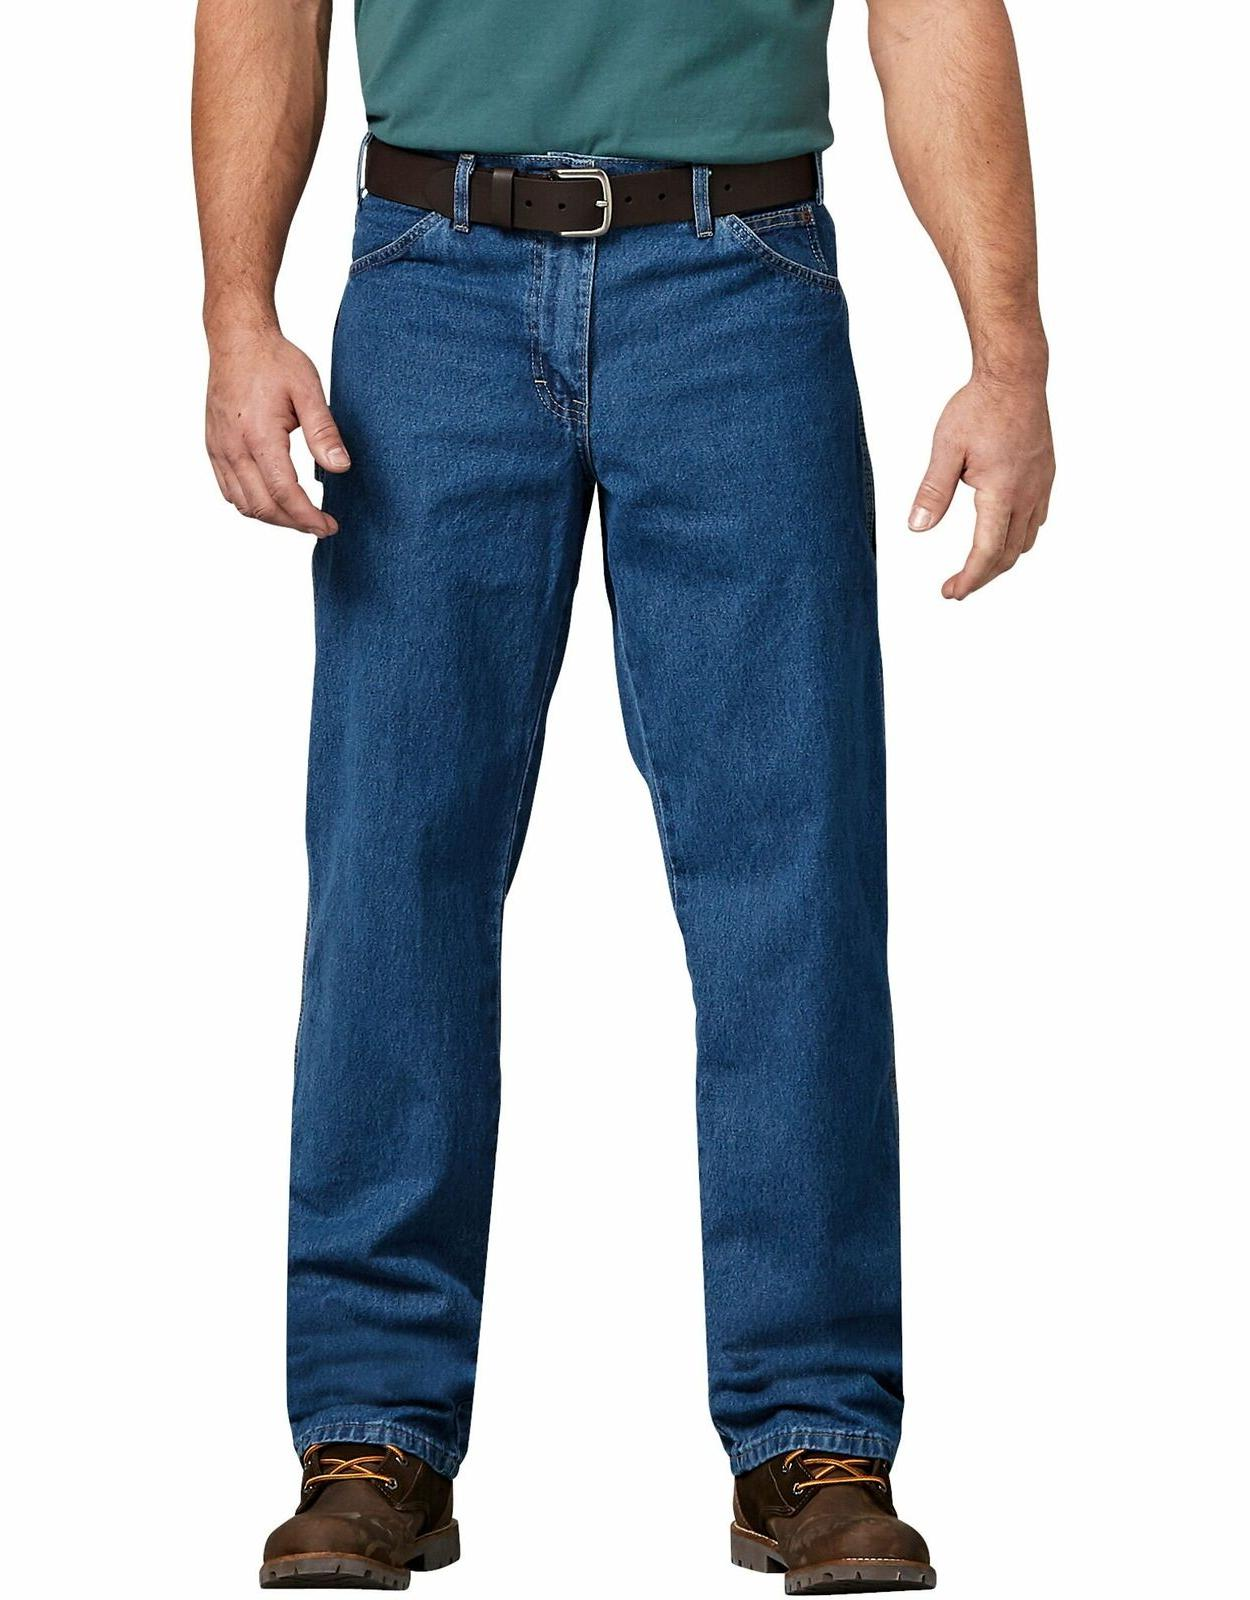 Dickie's Fit Jeans